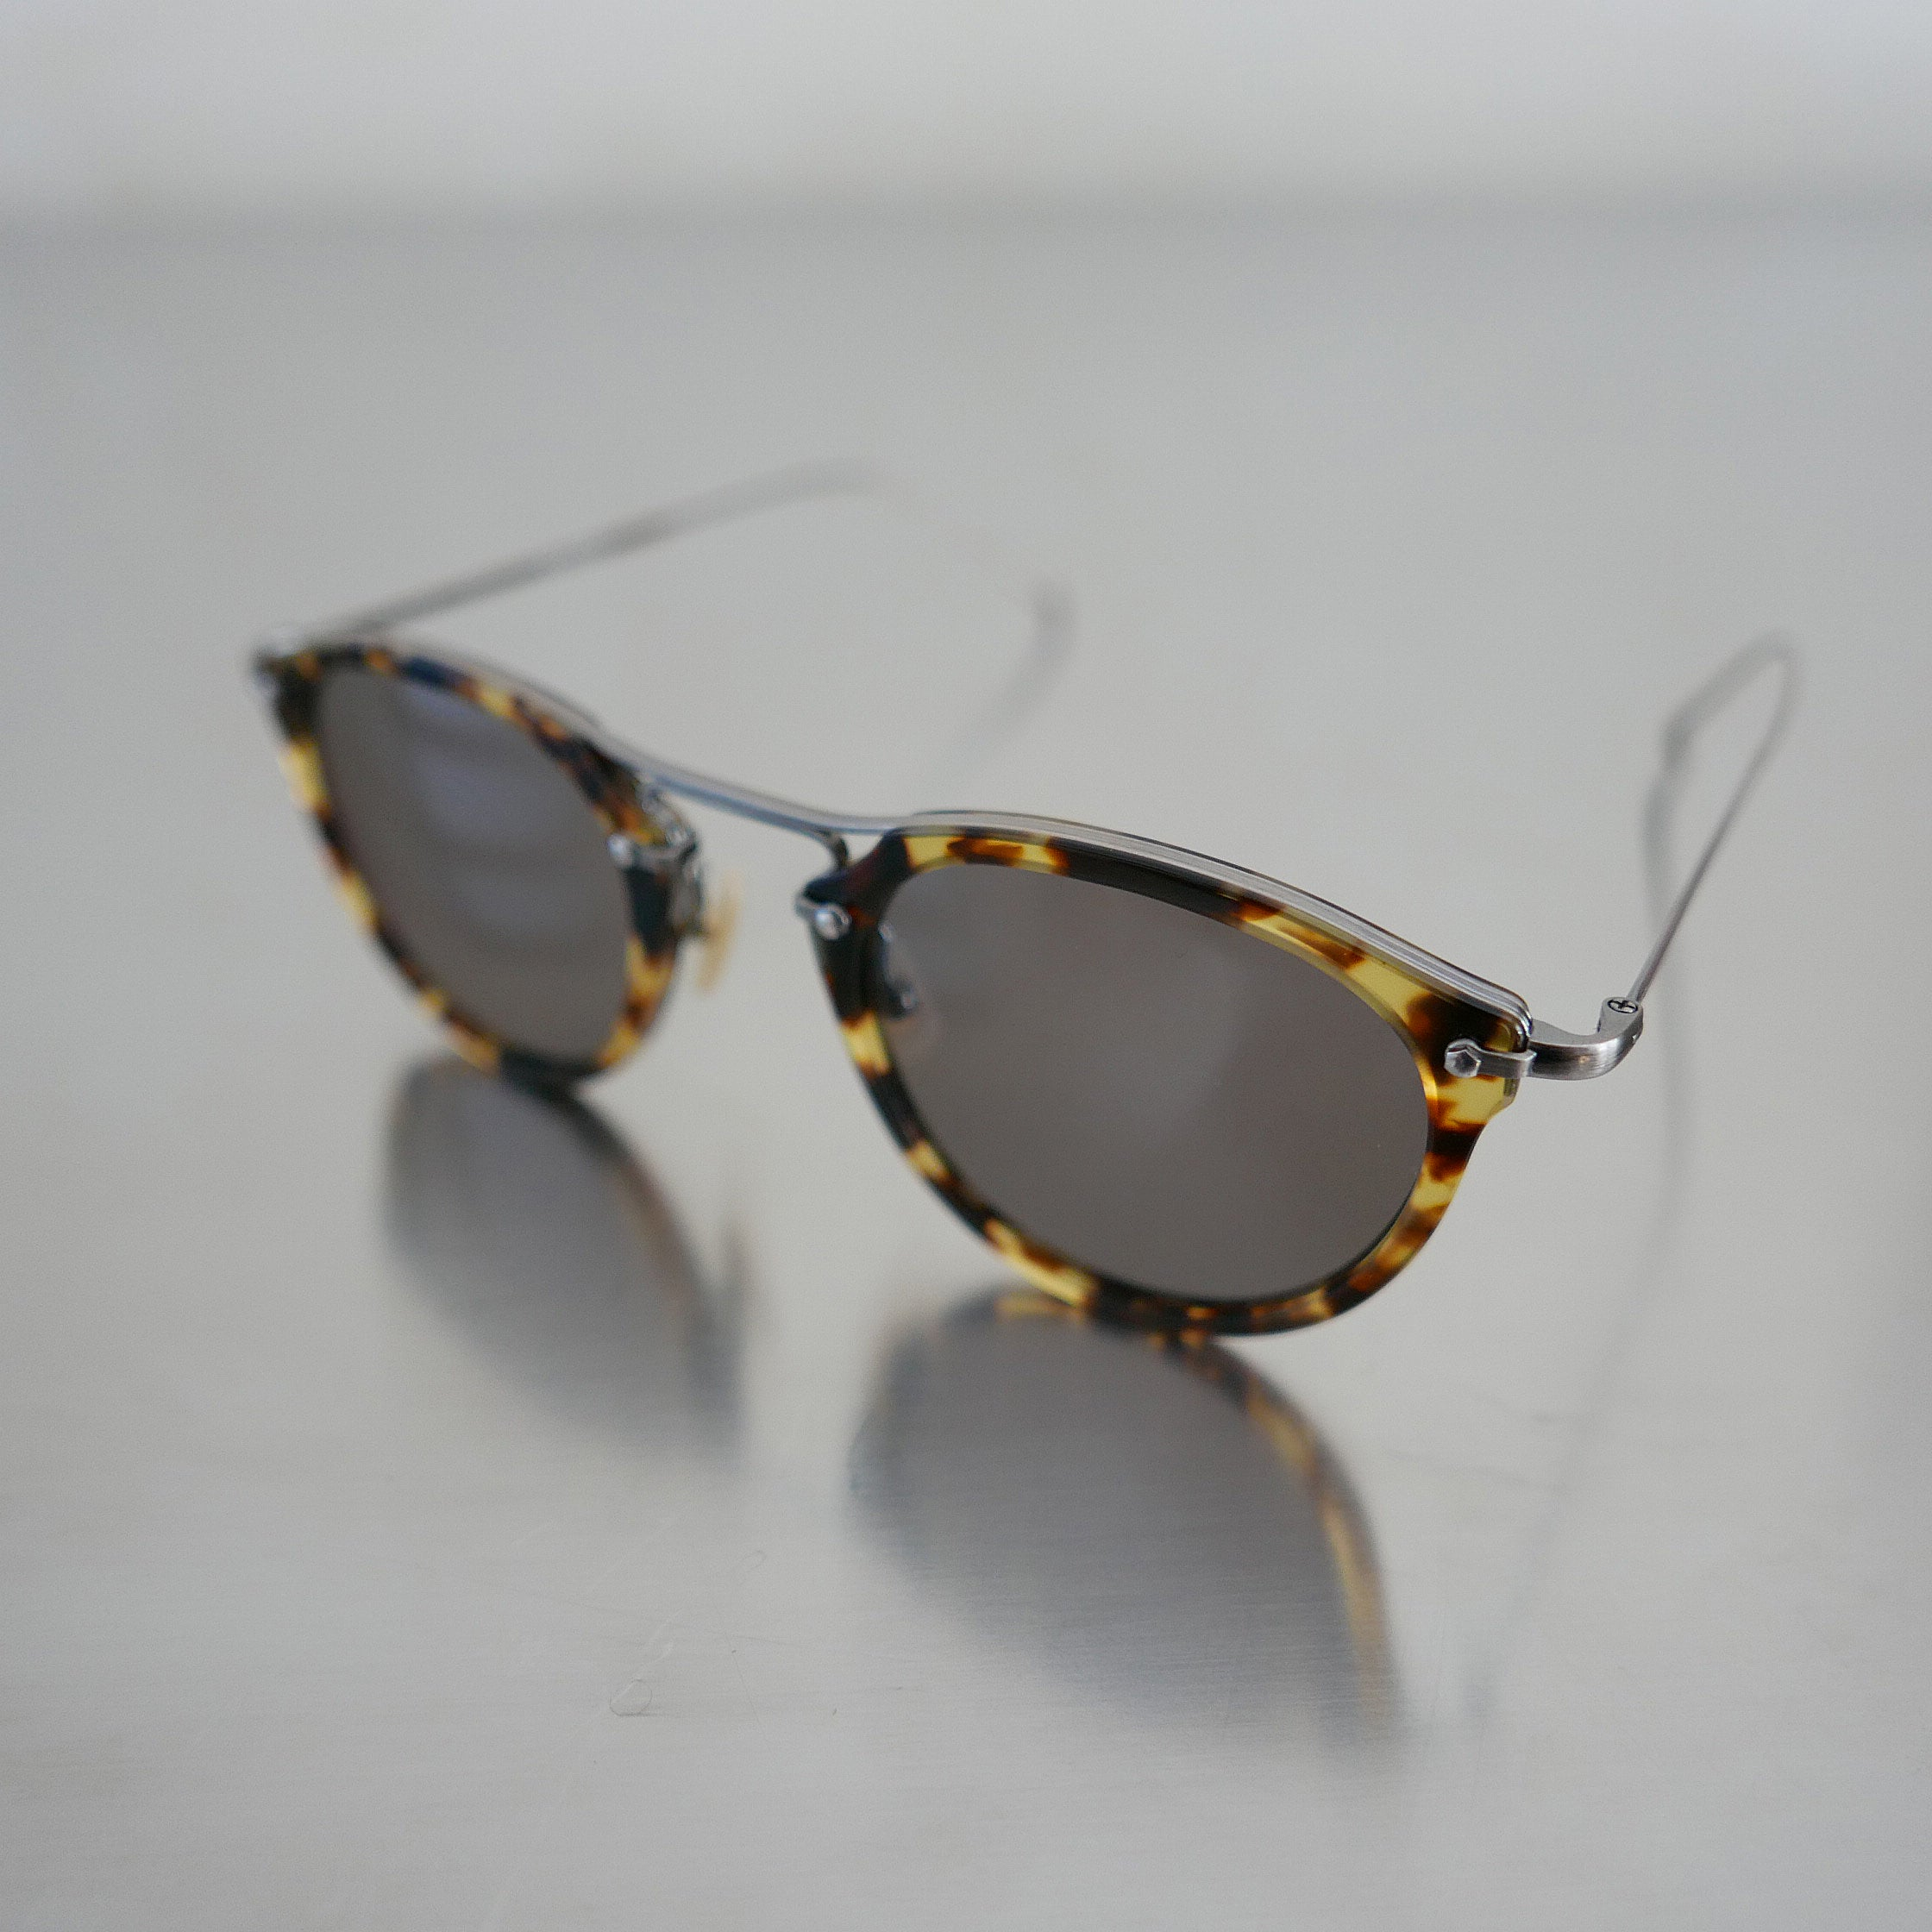 KVS-06  Sunglass in Yellow Demi - Biodegradable Cellulose Acetate and Titanium